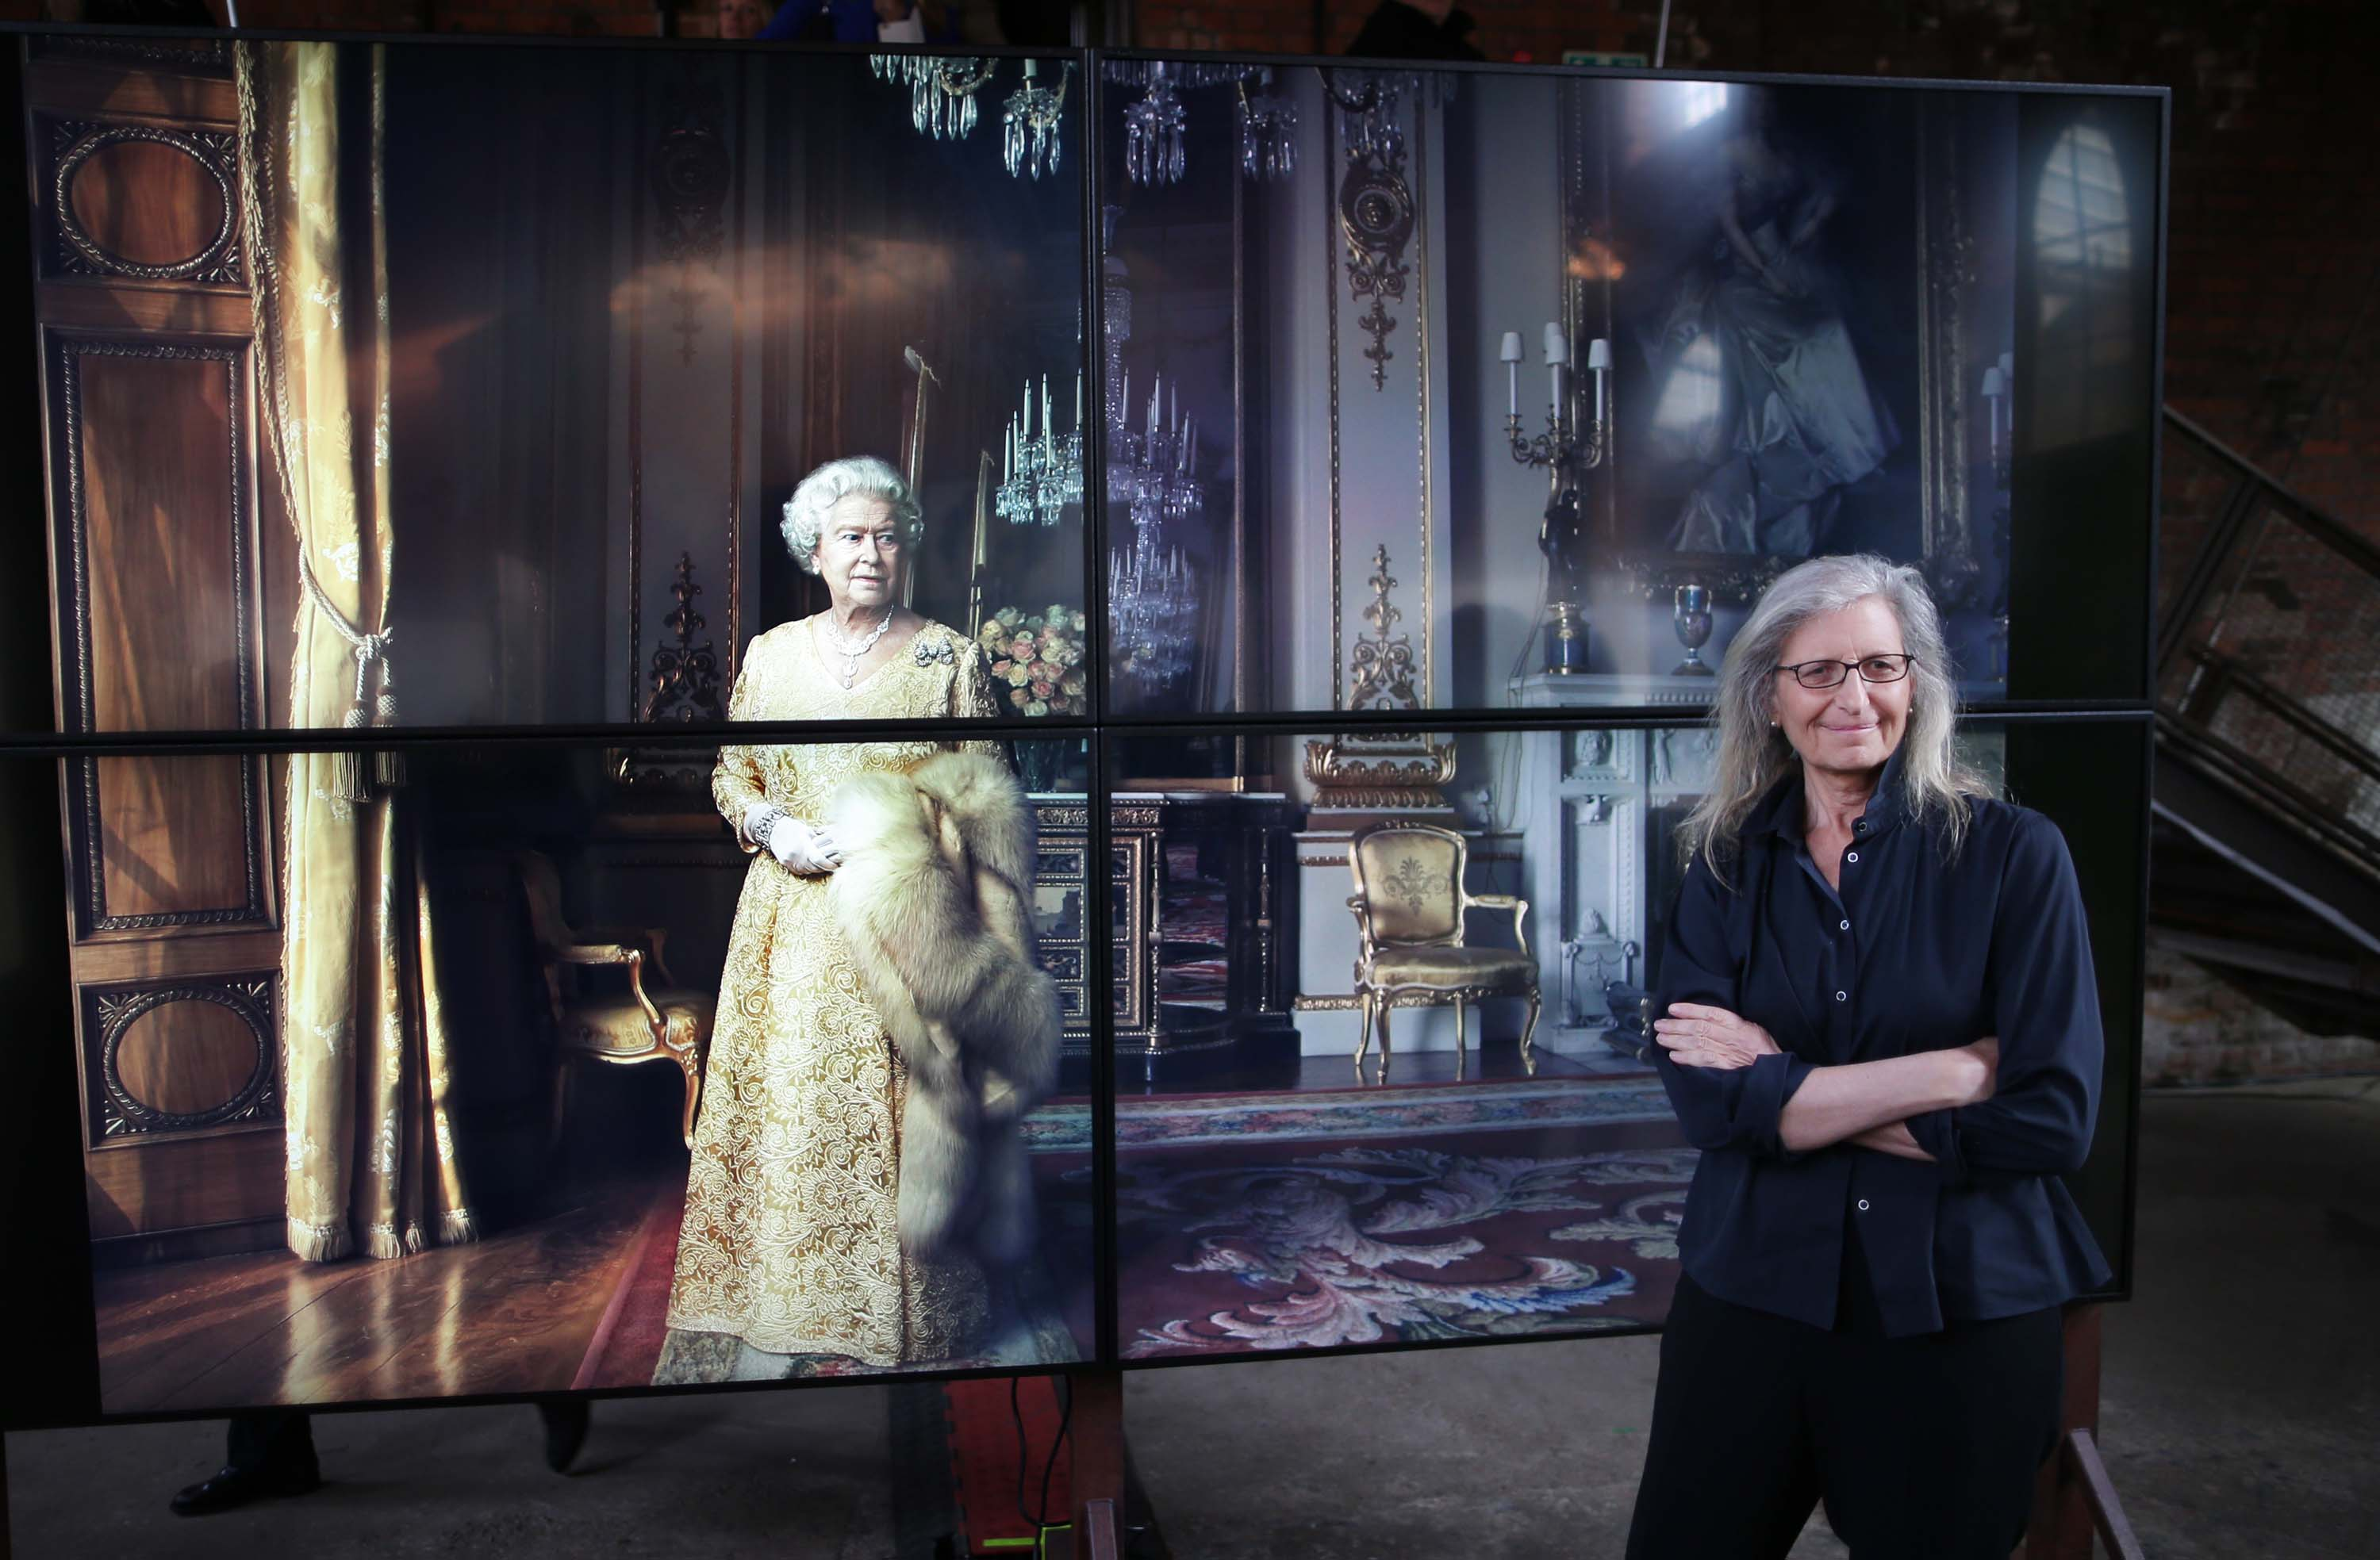 © Licensed to London News Pictures. This image is free to use ONLY in connection with the launch of the 'WOMEN: New Portraits' exhibition. 13/1/2016. London, UK. UBS and Annie Leibovitz launch 'WOMEN:New Portraits' at Wapping Hydraulic Power Station. Here Annie stands with an earlier portrait of Queen Elizabeth II. The exhibition opens to the public from Saturday 16th January until 7th February 2016. The newly commissioned photographs by the world renowned photographer will travel to 10 cities over the course of twelve months ñ London, Tokyo, San Francisco, Singapore, Hong Kong, Mexico City, Istanbul, Frankfurt, New York and Zurich. Access will be free to the public. Photo credit: Peter Macdiarmid.